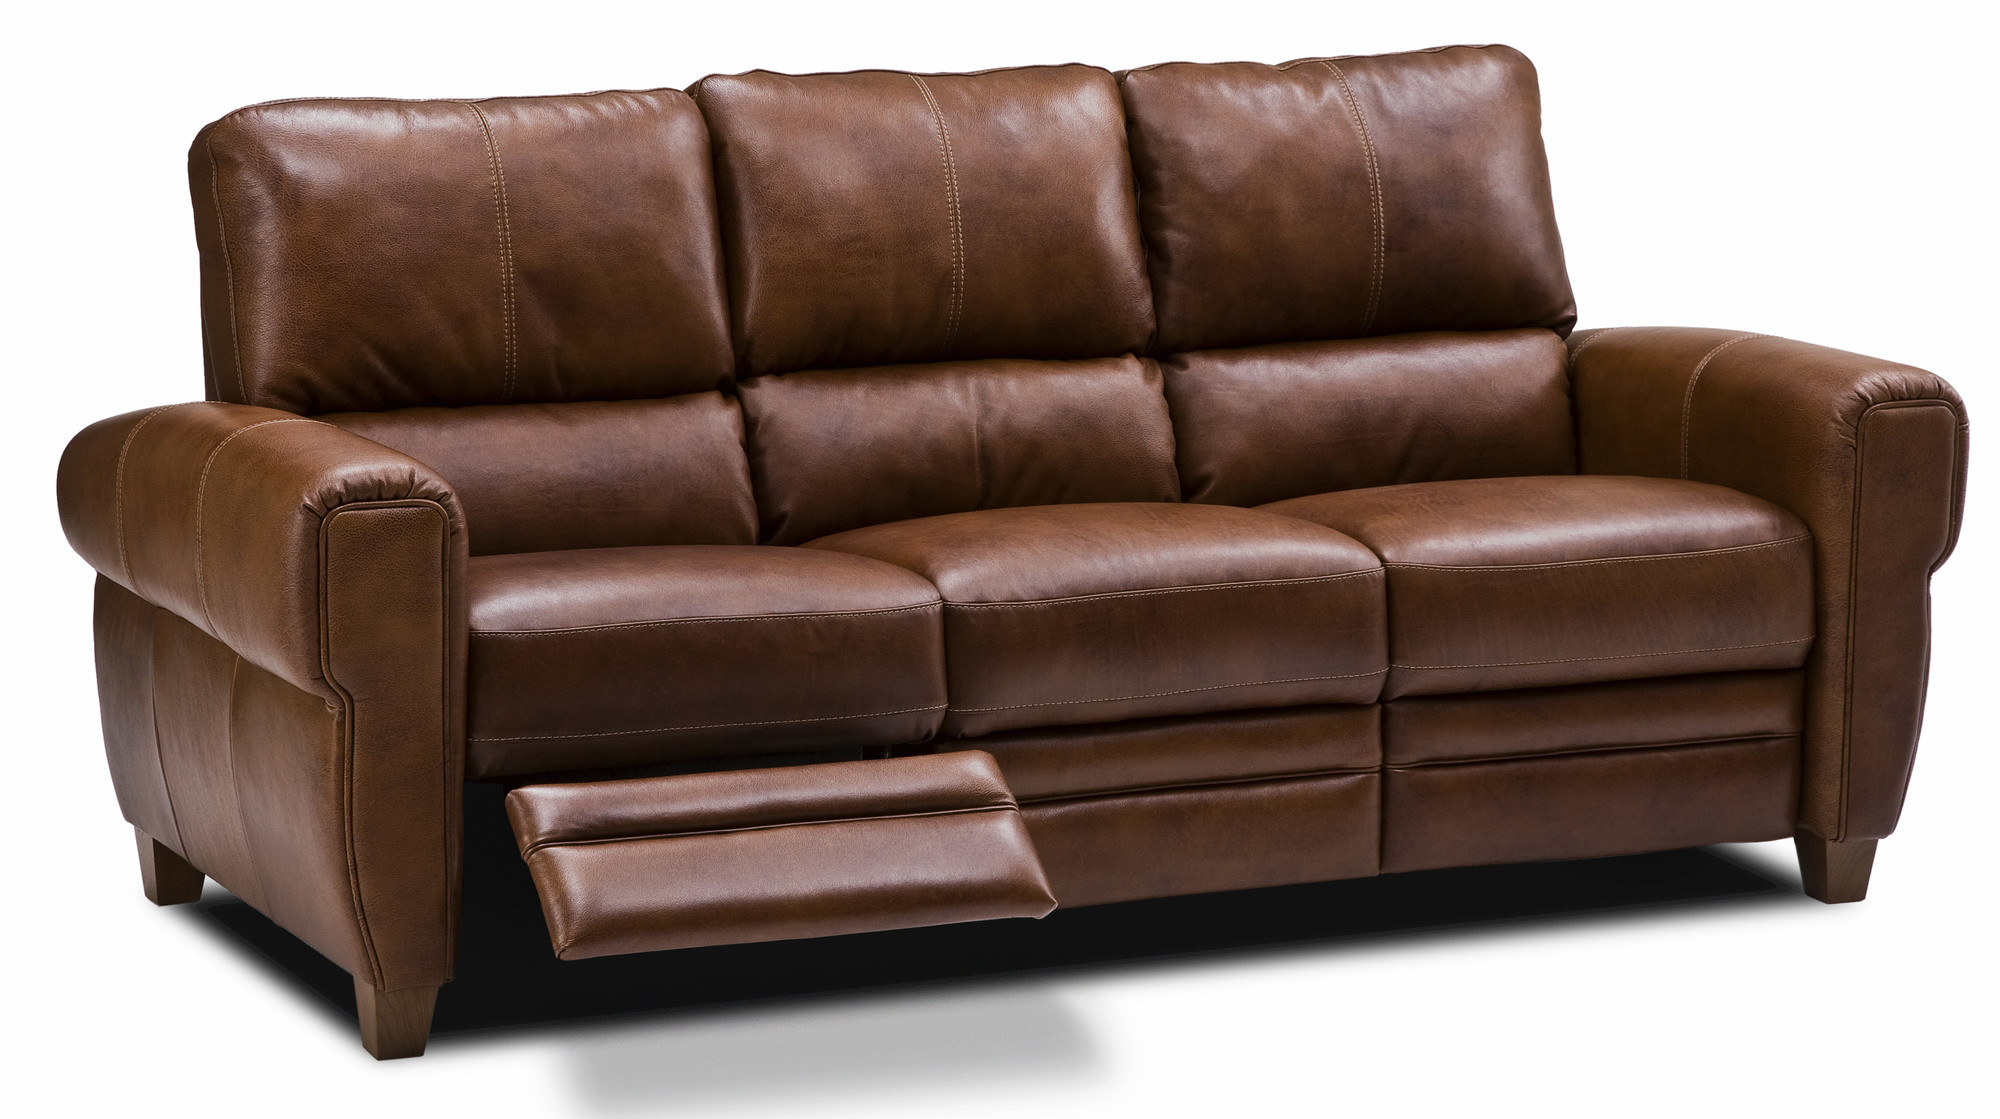 leather sectional sofa bed recliner photo - 2